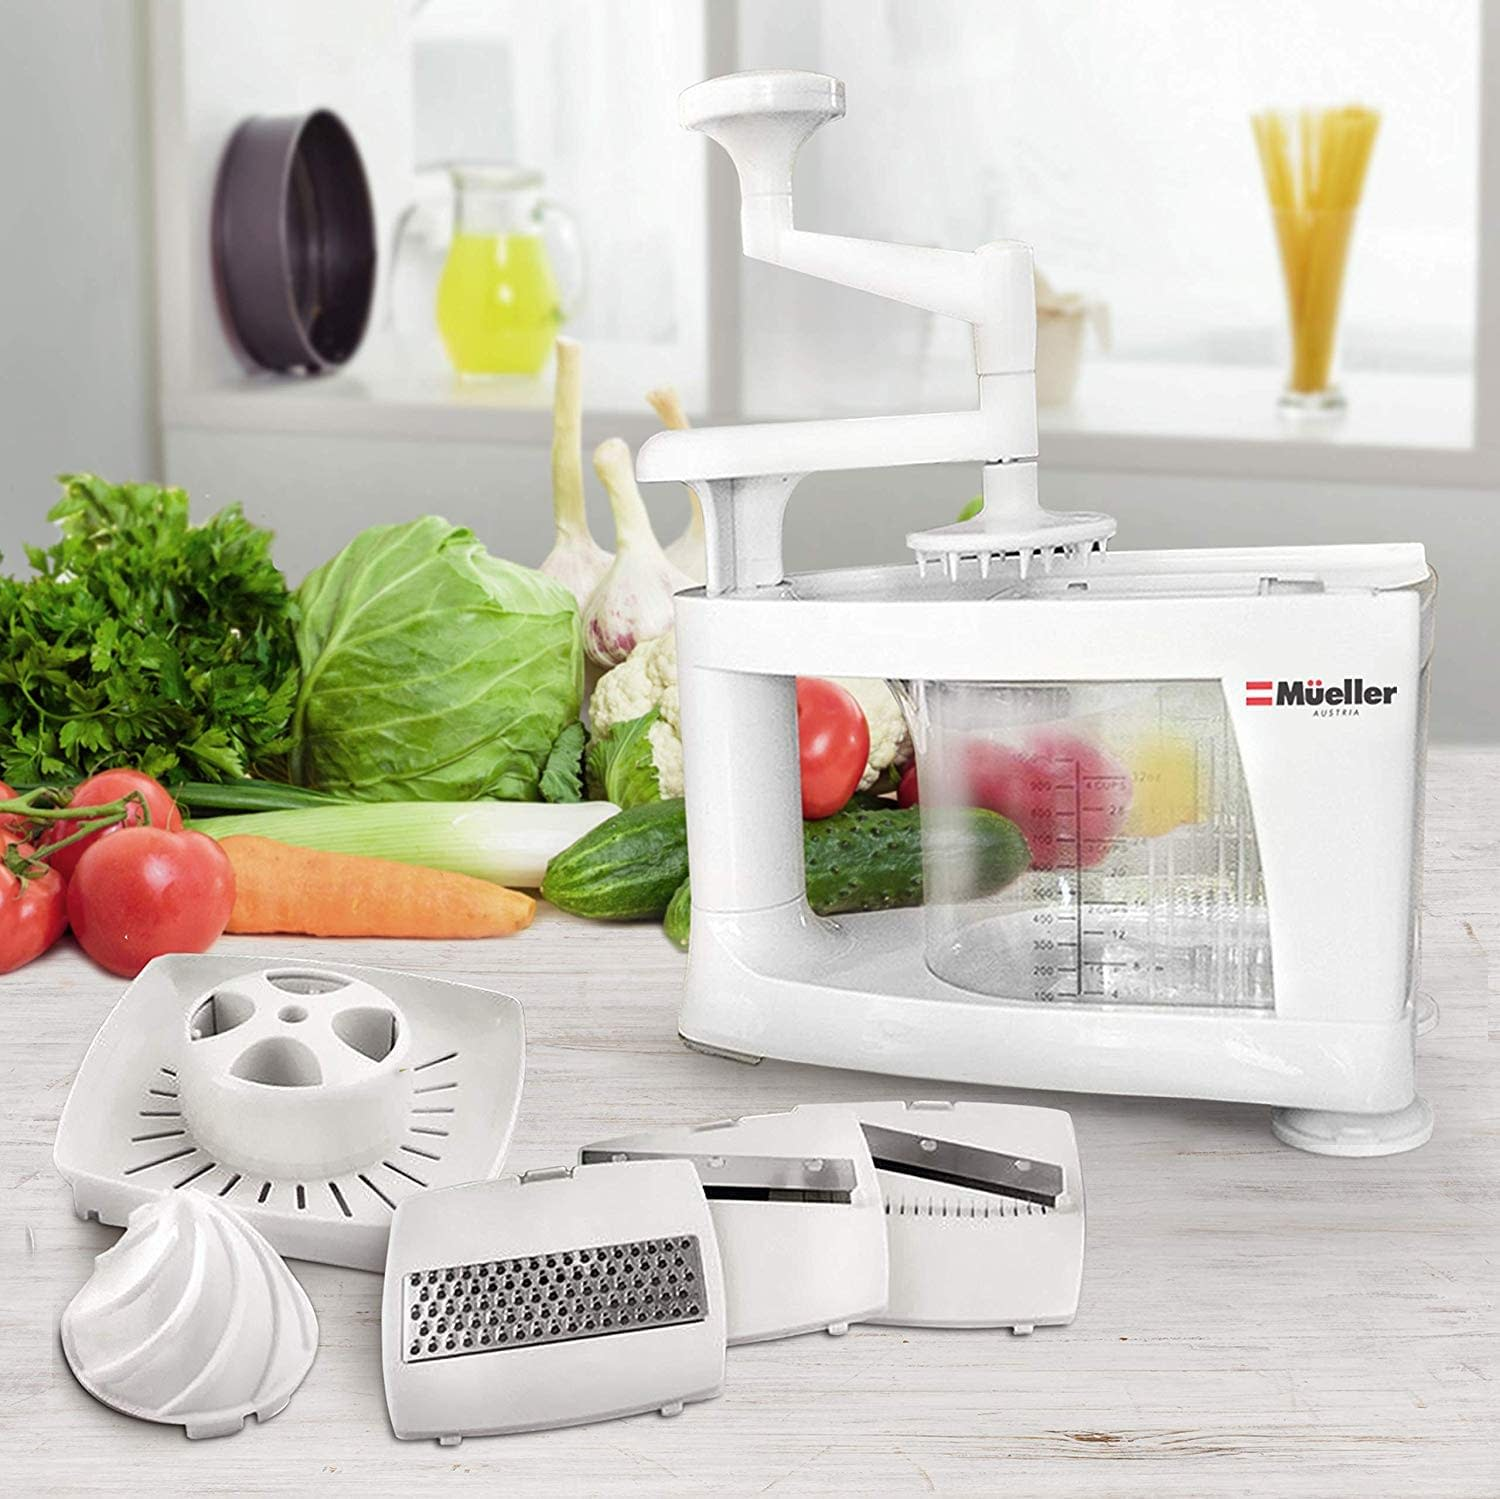 Best appliance for chopping vegetables